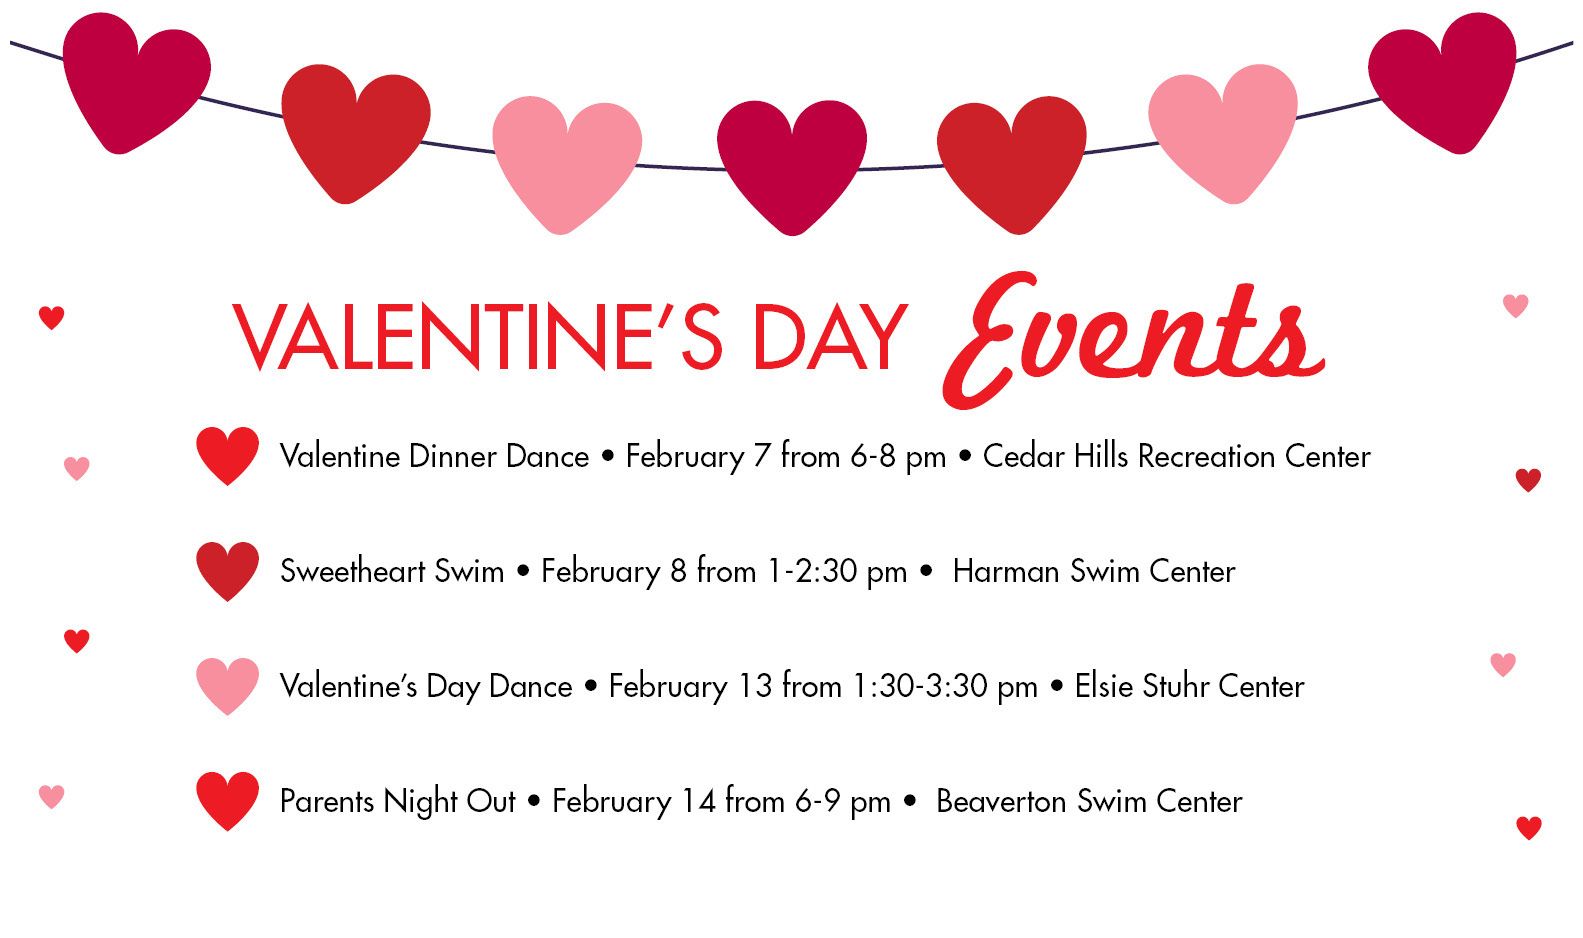 Valentine's Day - Special Events